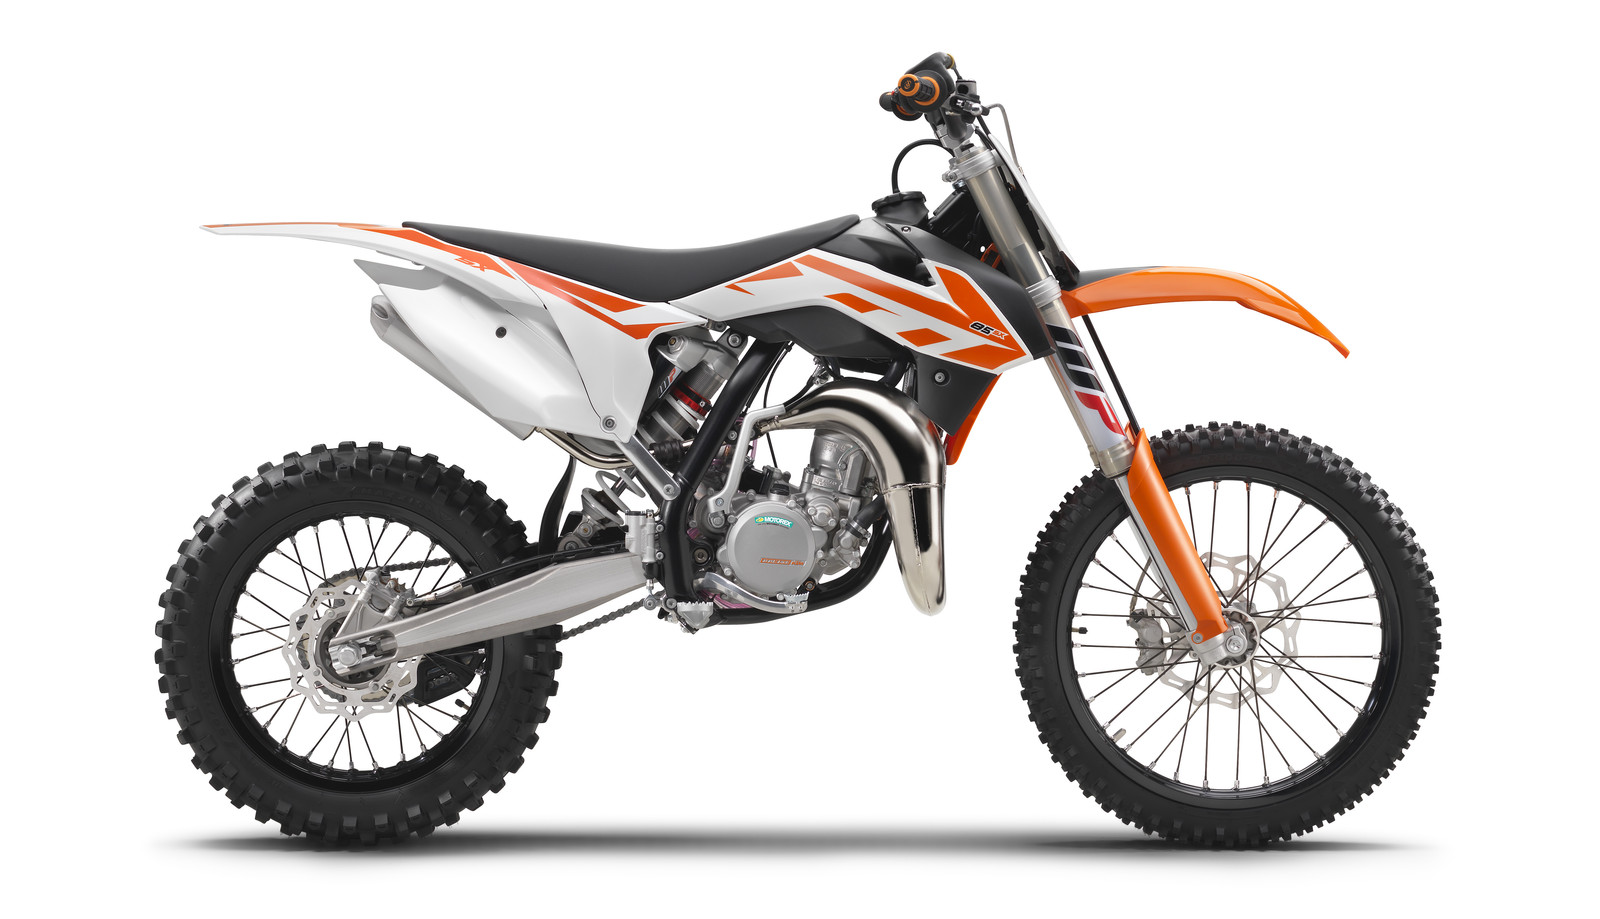 2017 ktm 85 sx first look 2017 ktm 50 sx  65 sx  and 85 sx motocross pictures vital mx radial airplane engine diagram radial piston engine diagram